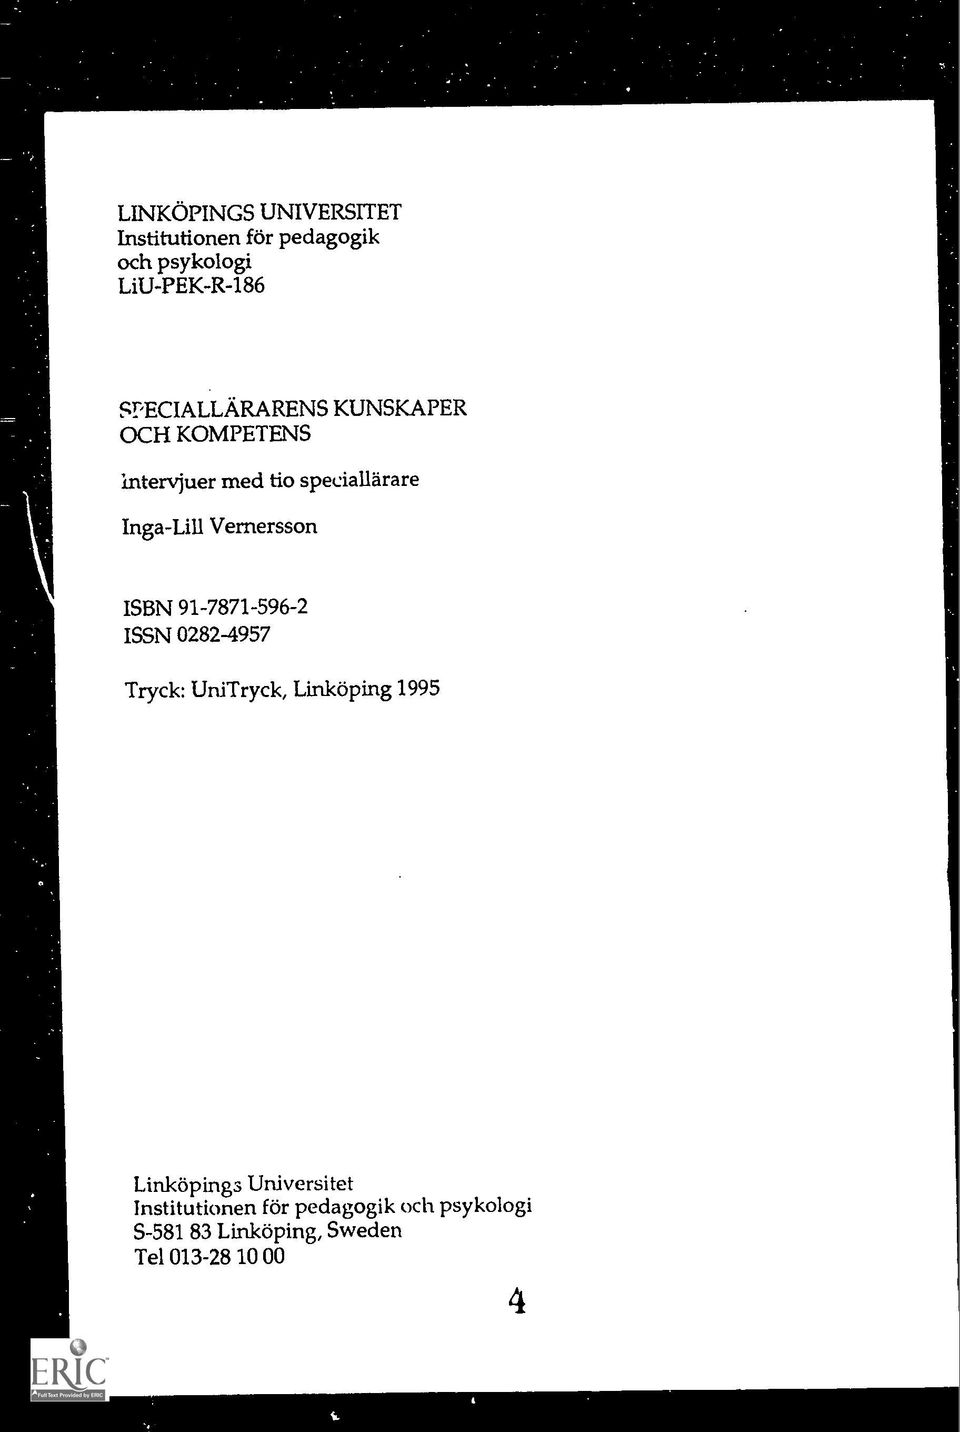 Vernersson ISBN 91-7871-596-2 ISSN 0282-4957 Tryck: UniTryck, Linkoping 1995 Lmkopings